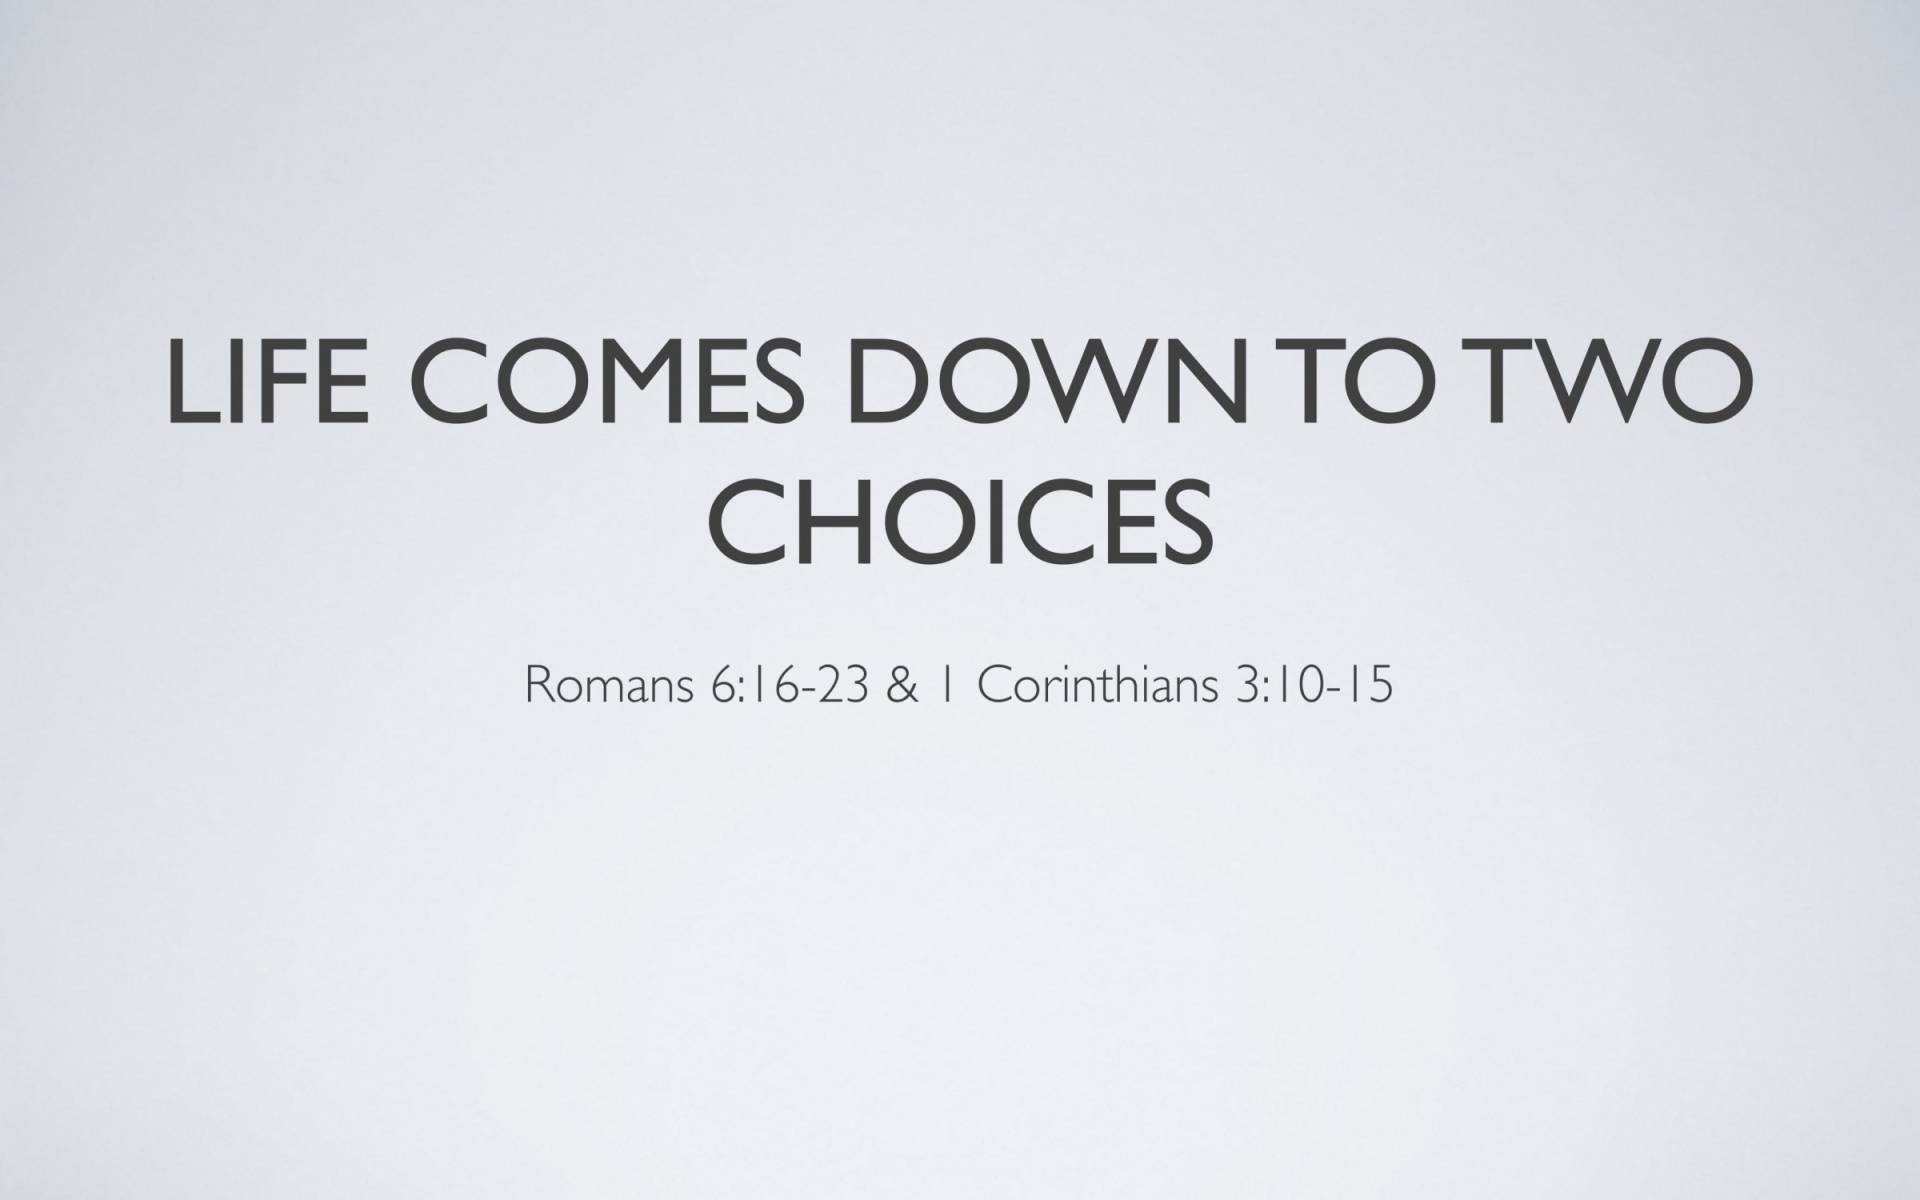 BC&D-16 - Lesson 5-3 - How To Counsel And Disciple People Using The Platform Of Exposure To The Temptation To Sin-09